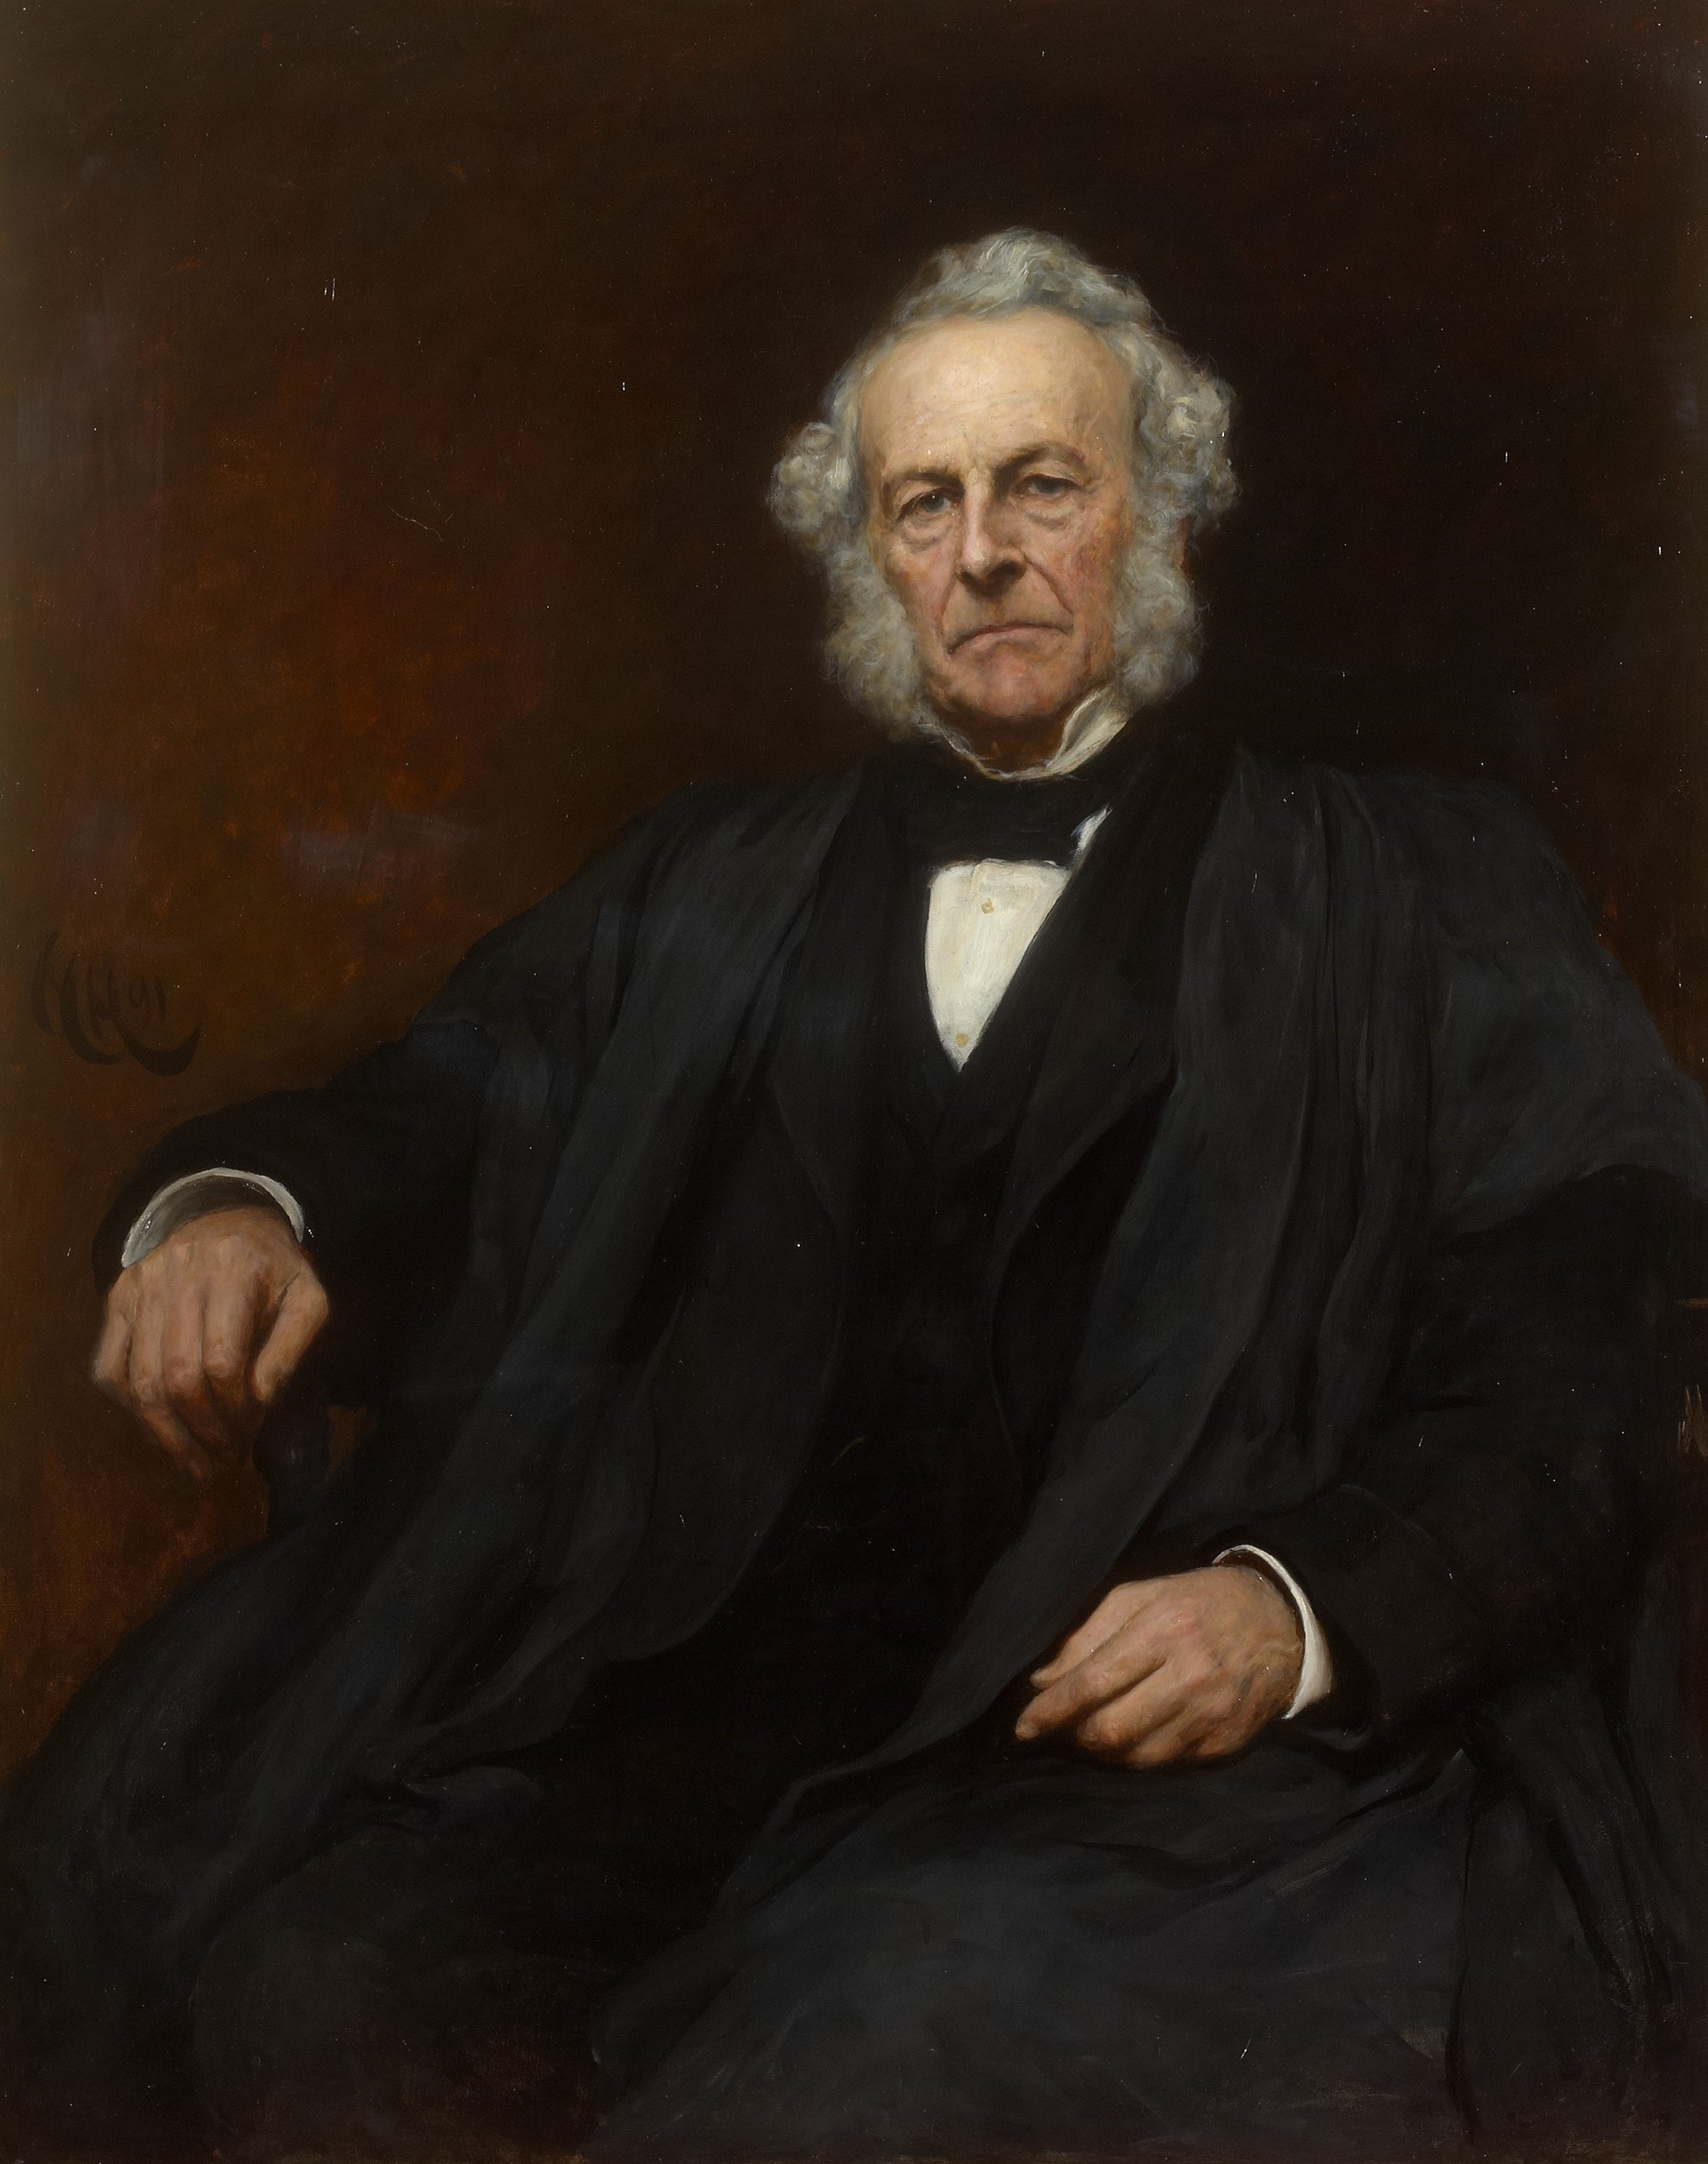 George Gabriel Stokes, secretary and editor of the Transactions 1854-85